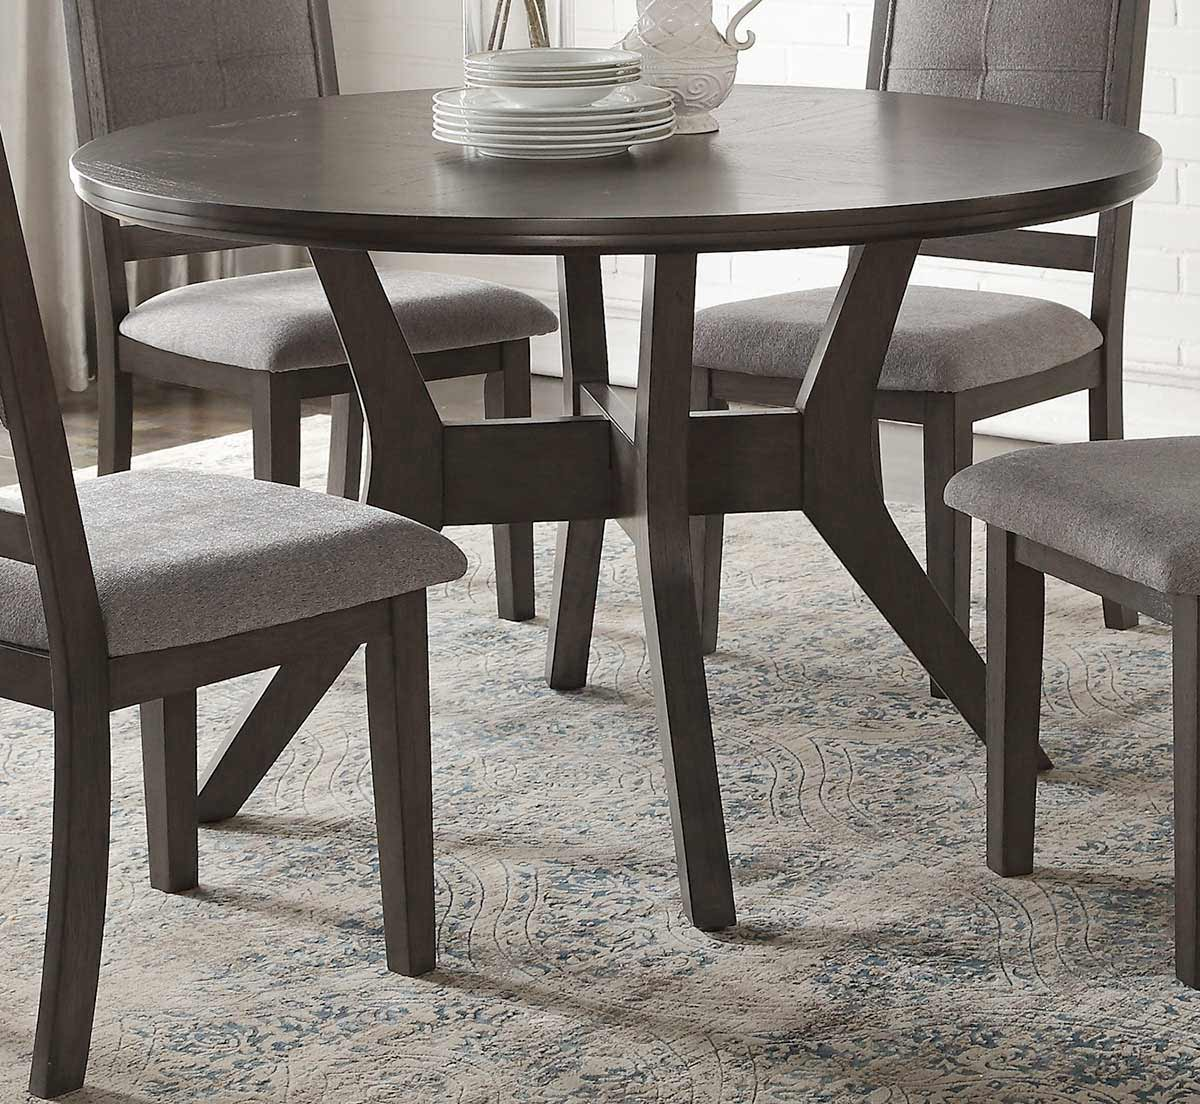 Homelegance Nisky Round Dining Table - Gray